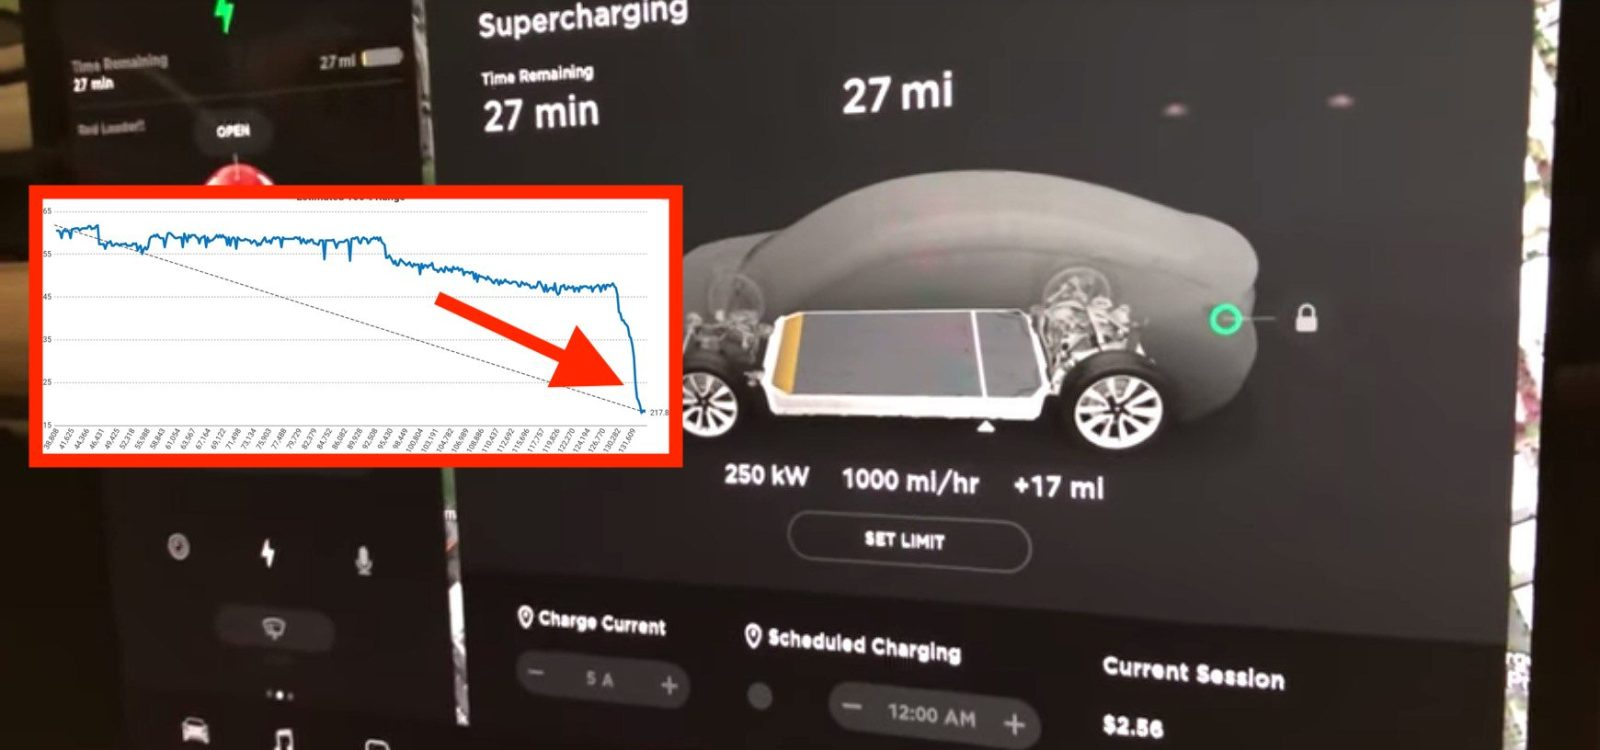 A Tesla hearse goes for sale at a whopping $200,000 - Electrek